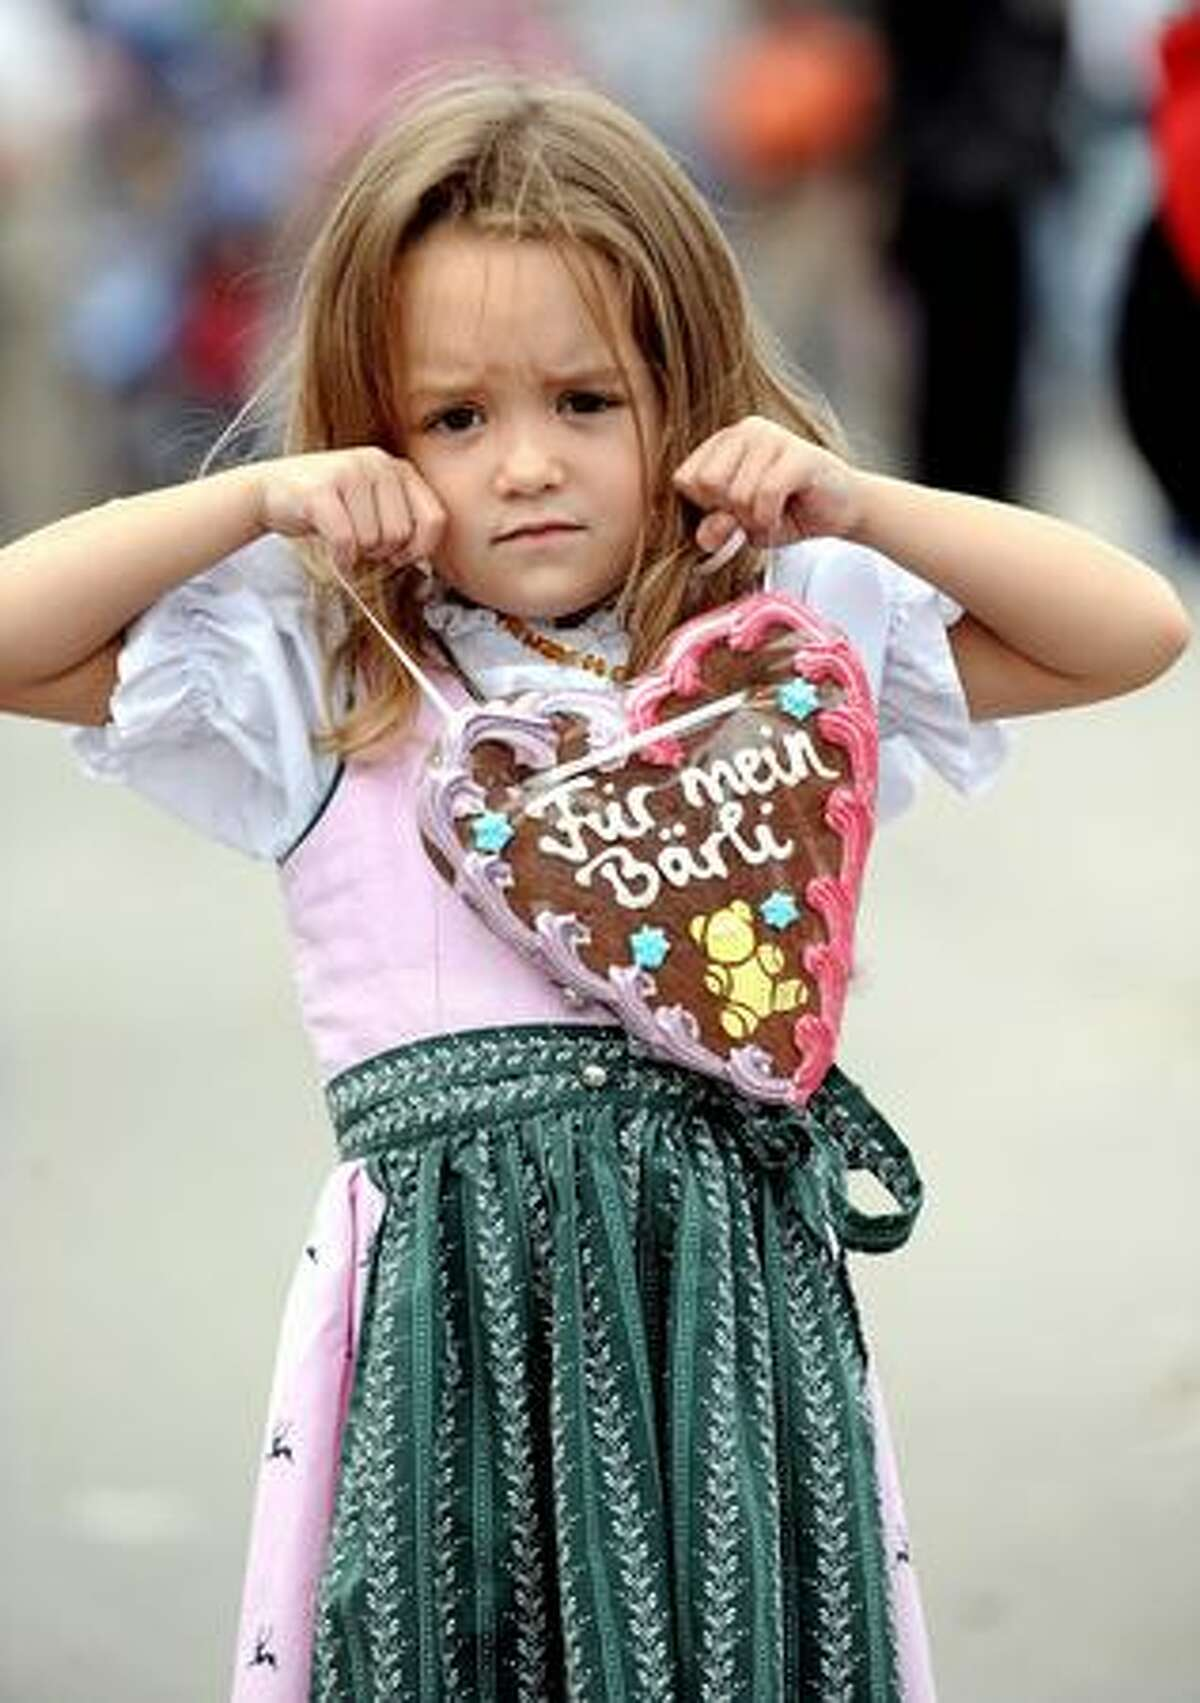 A young girl holds a gingerbread heart during the Oktoberfest beer festival at the